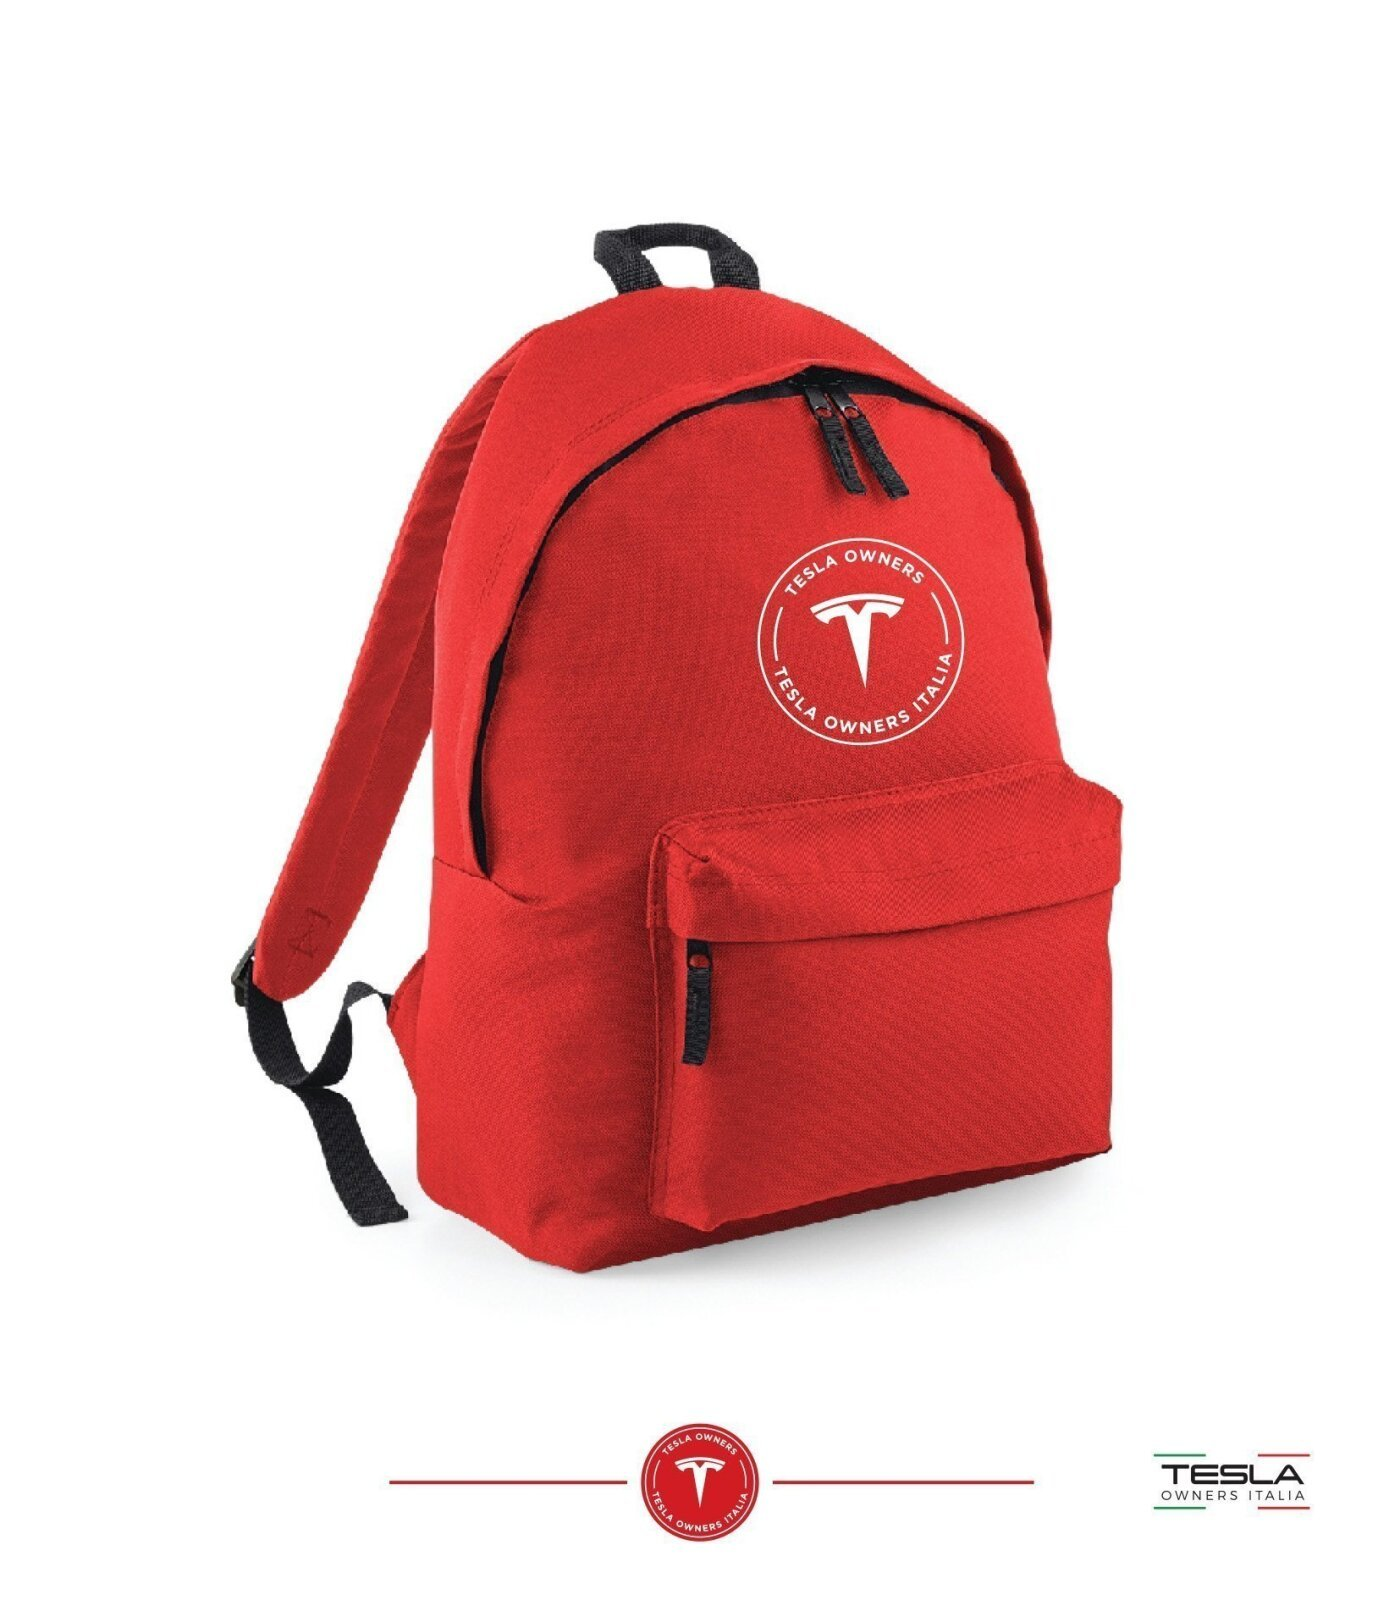 ORIGINAL TOI BACKPACK